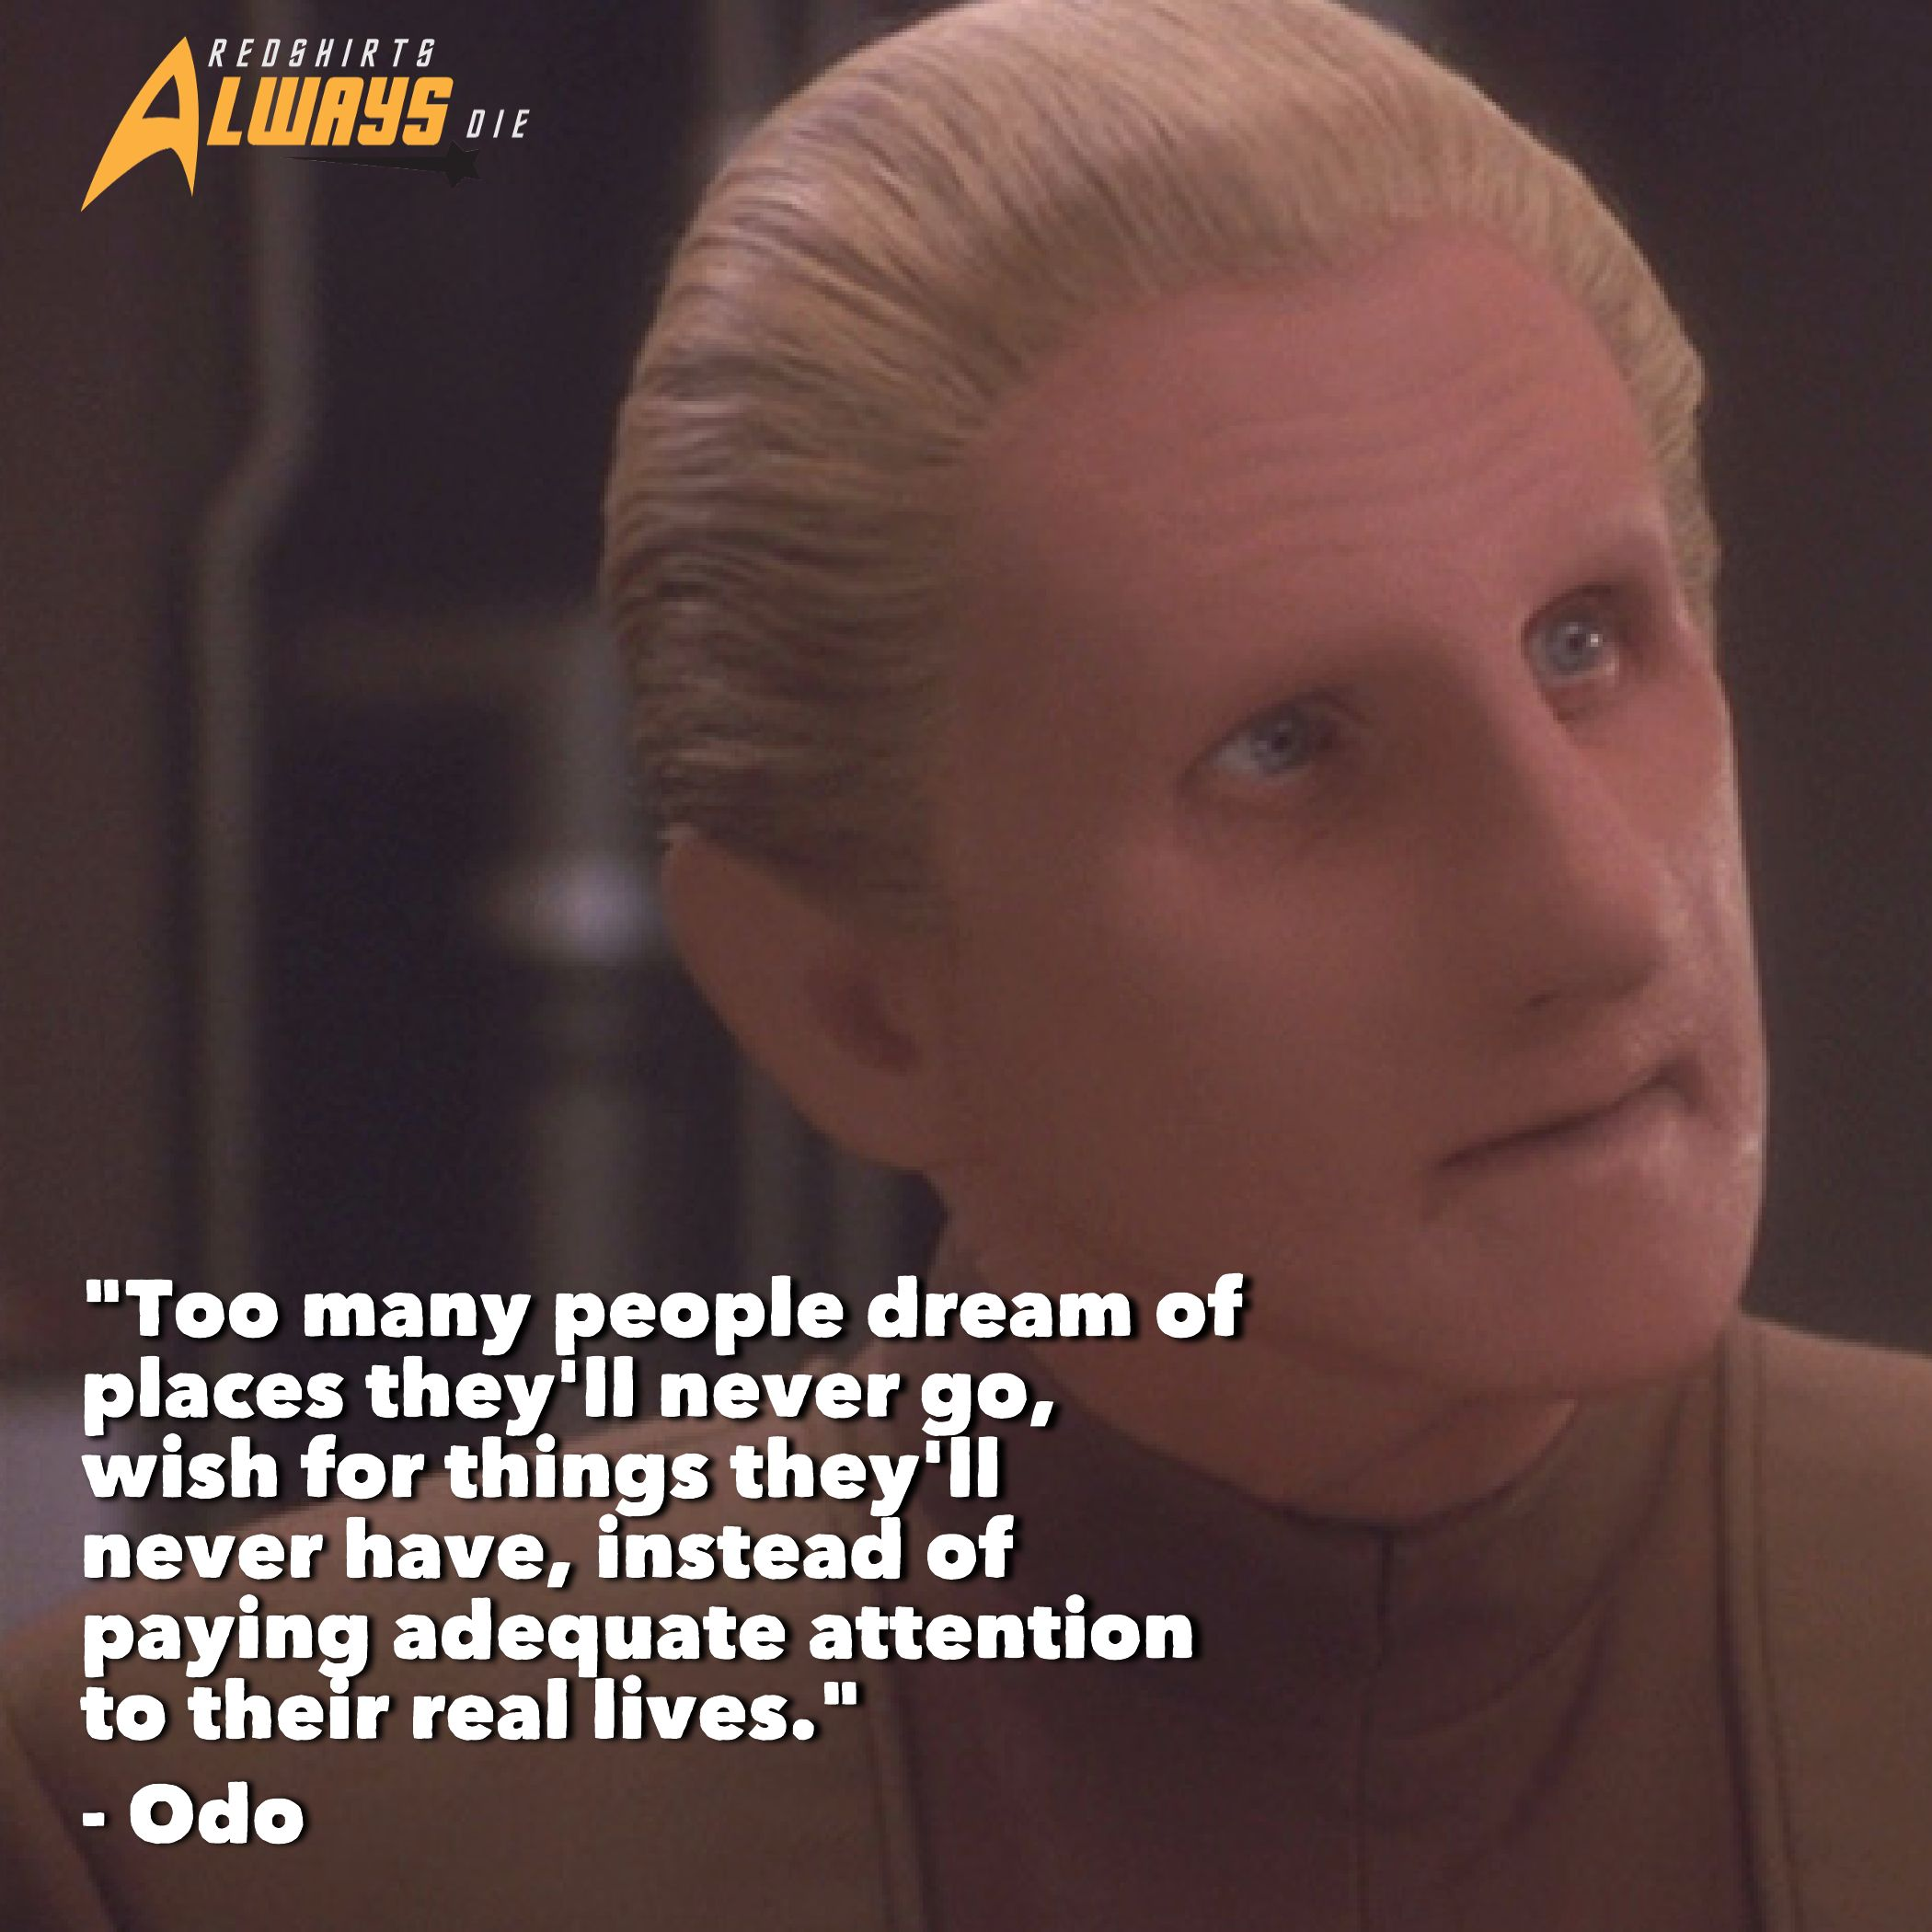 Star Trek Quotes | The Top 30 Greatest Star Trek Quotes Of All Time In One Place Page 15